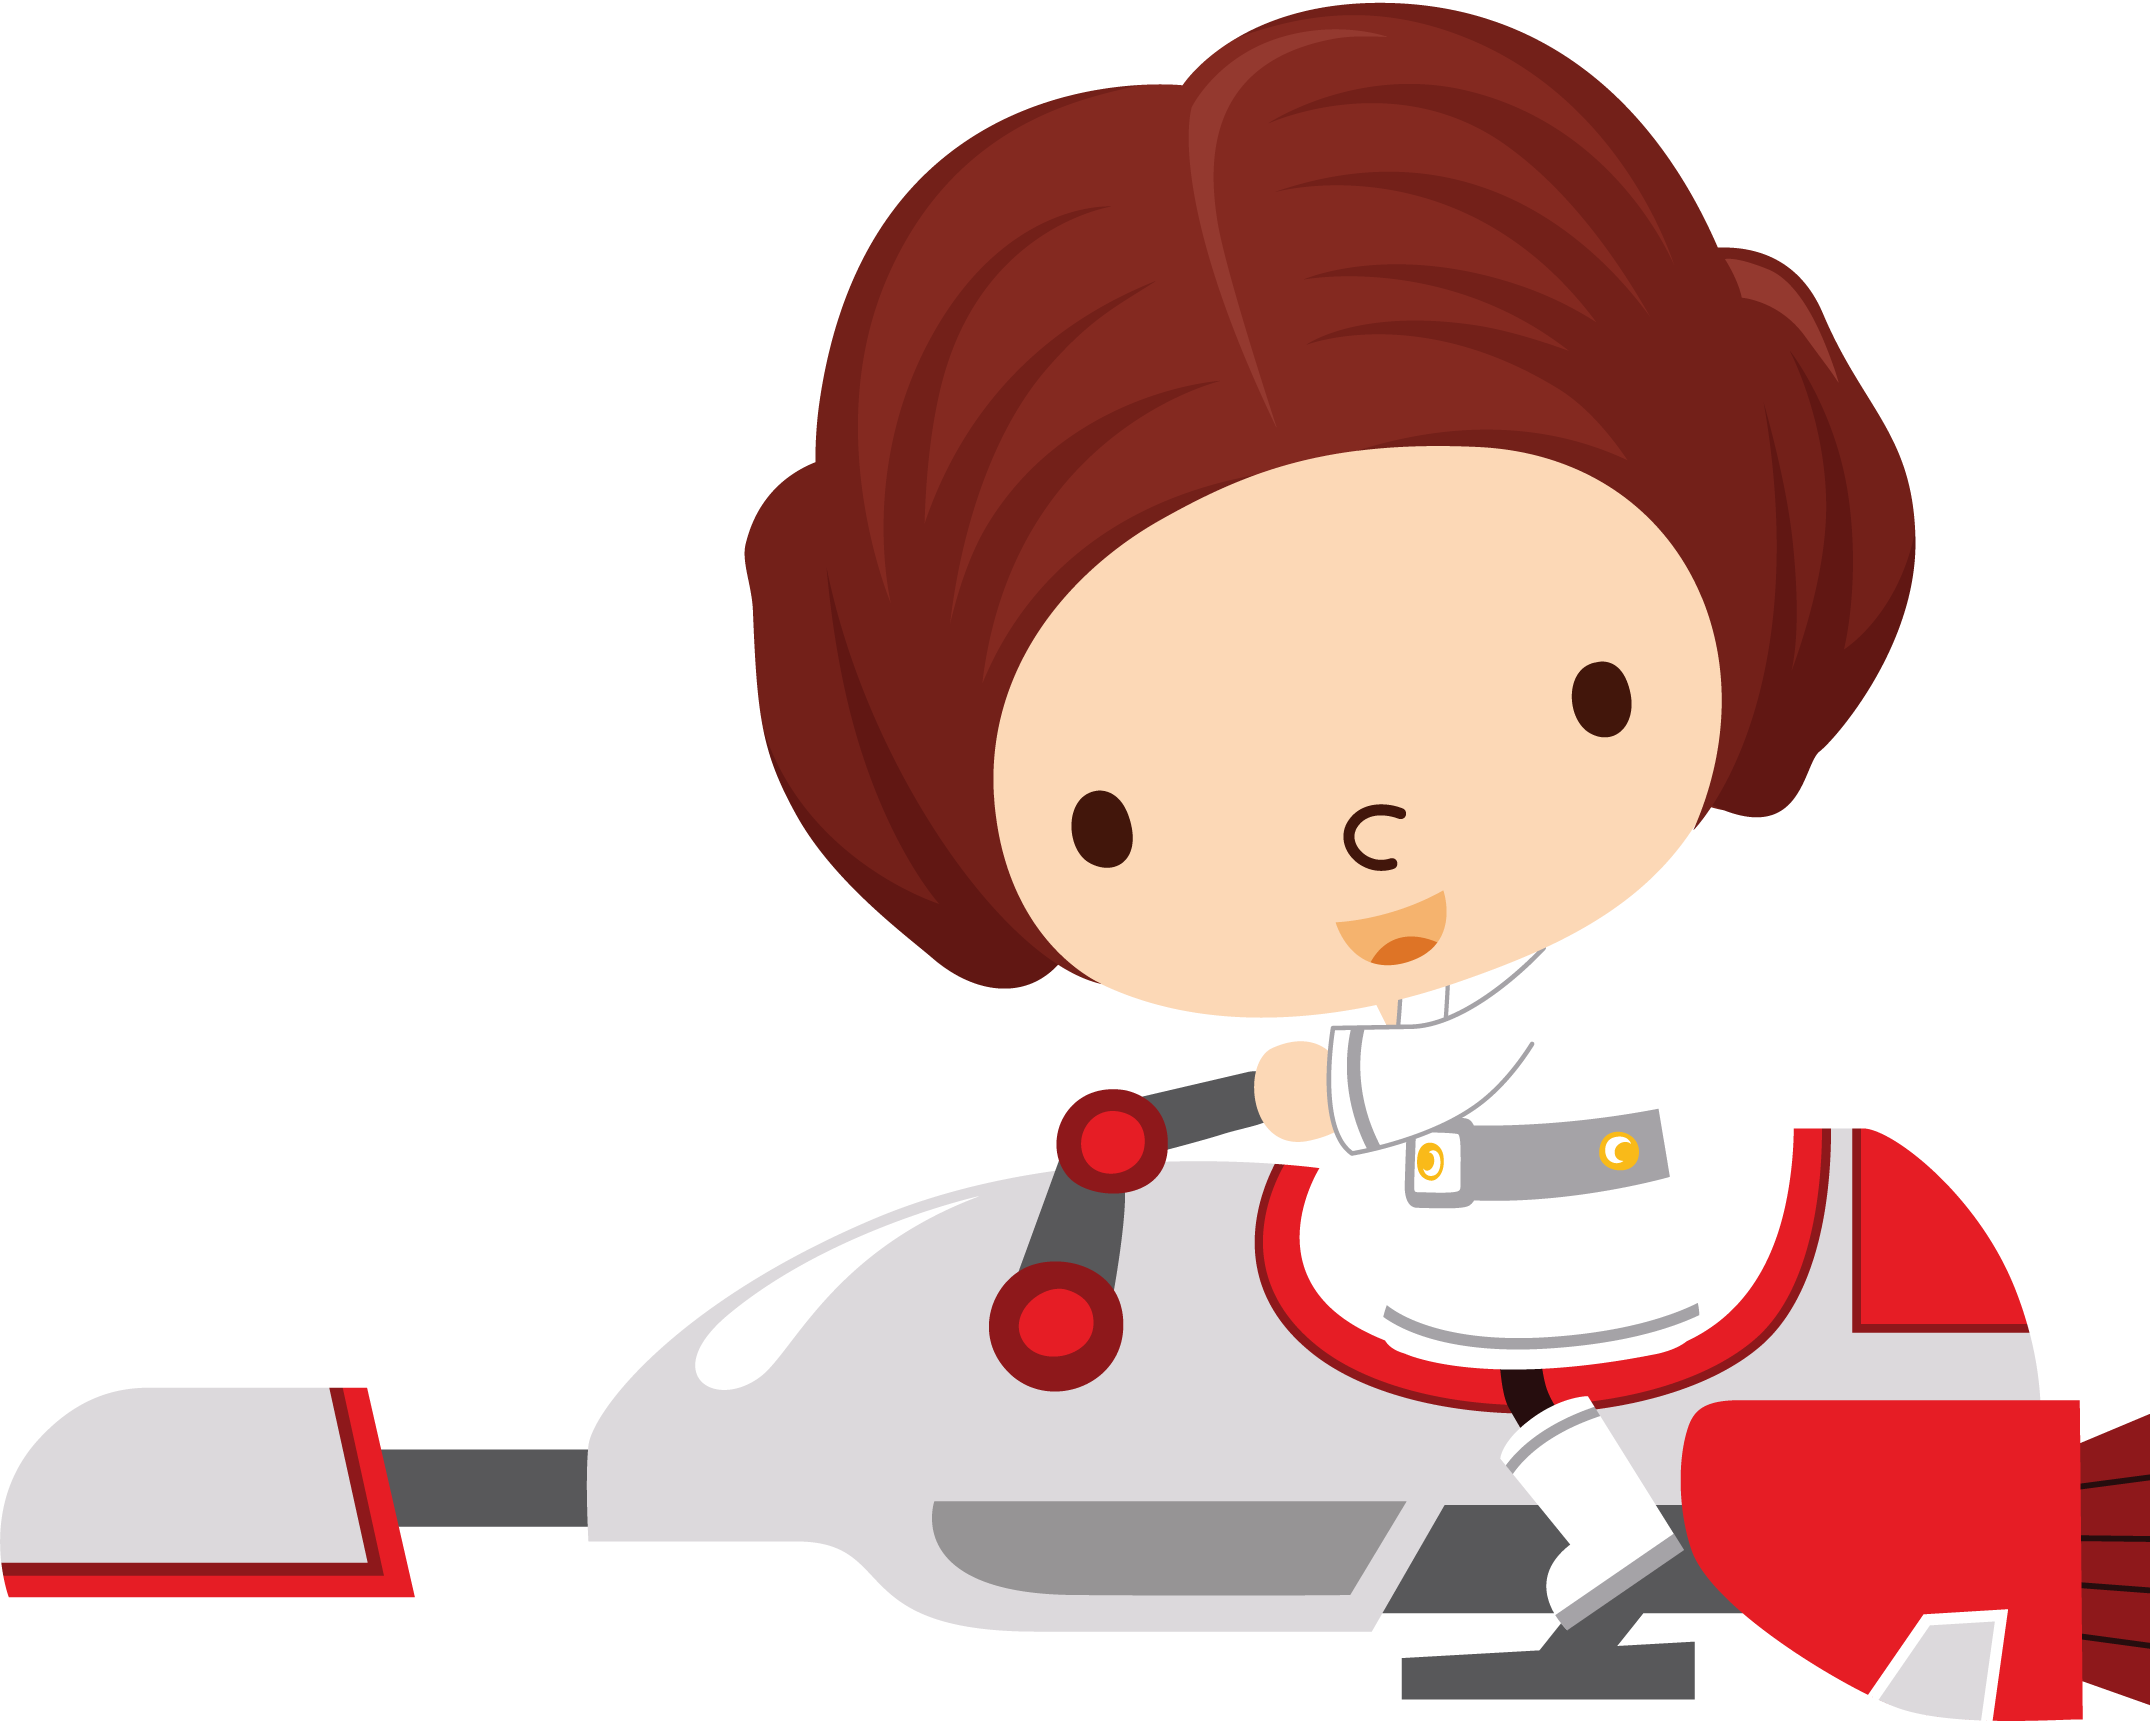 Star Wars Clip Art by Chrispix326 on DeviantArt.